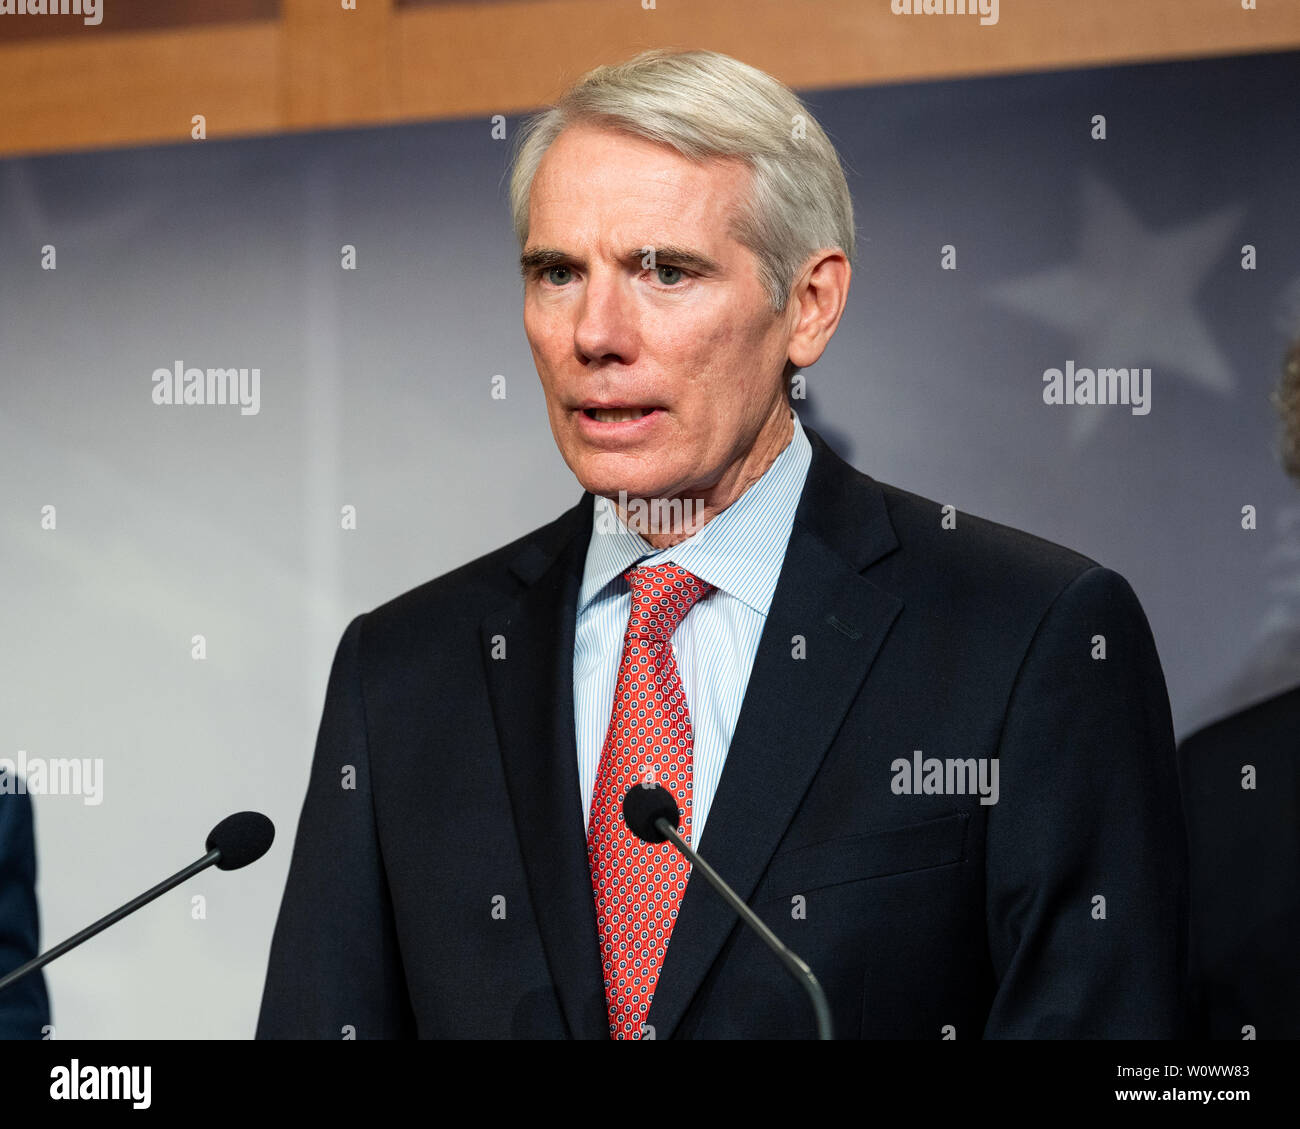 Washington, United States. 27th June, 2019. U.S. Senator Rob Portman (R-OH) speaking at a press conference on sanctions on North Korea in the National Defense Authorization Act at the US Capitol in Washington, DC. Credit: SOPA Images Limited/Alamy Live News Stock Photo